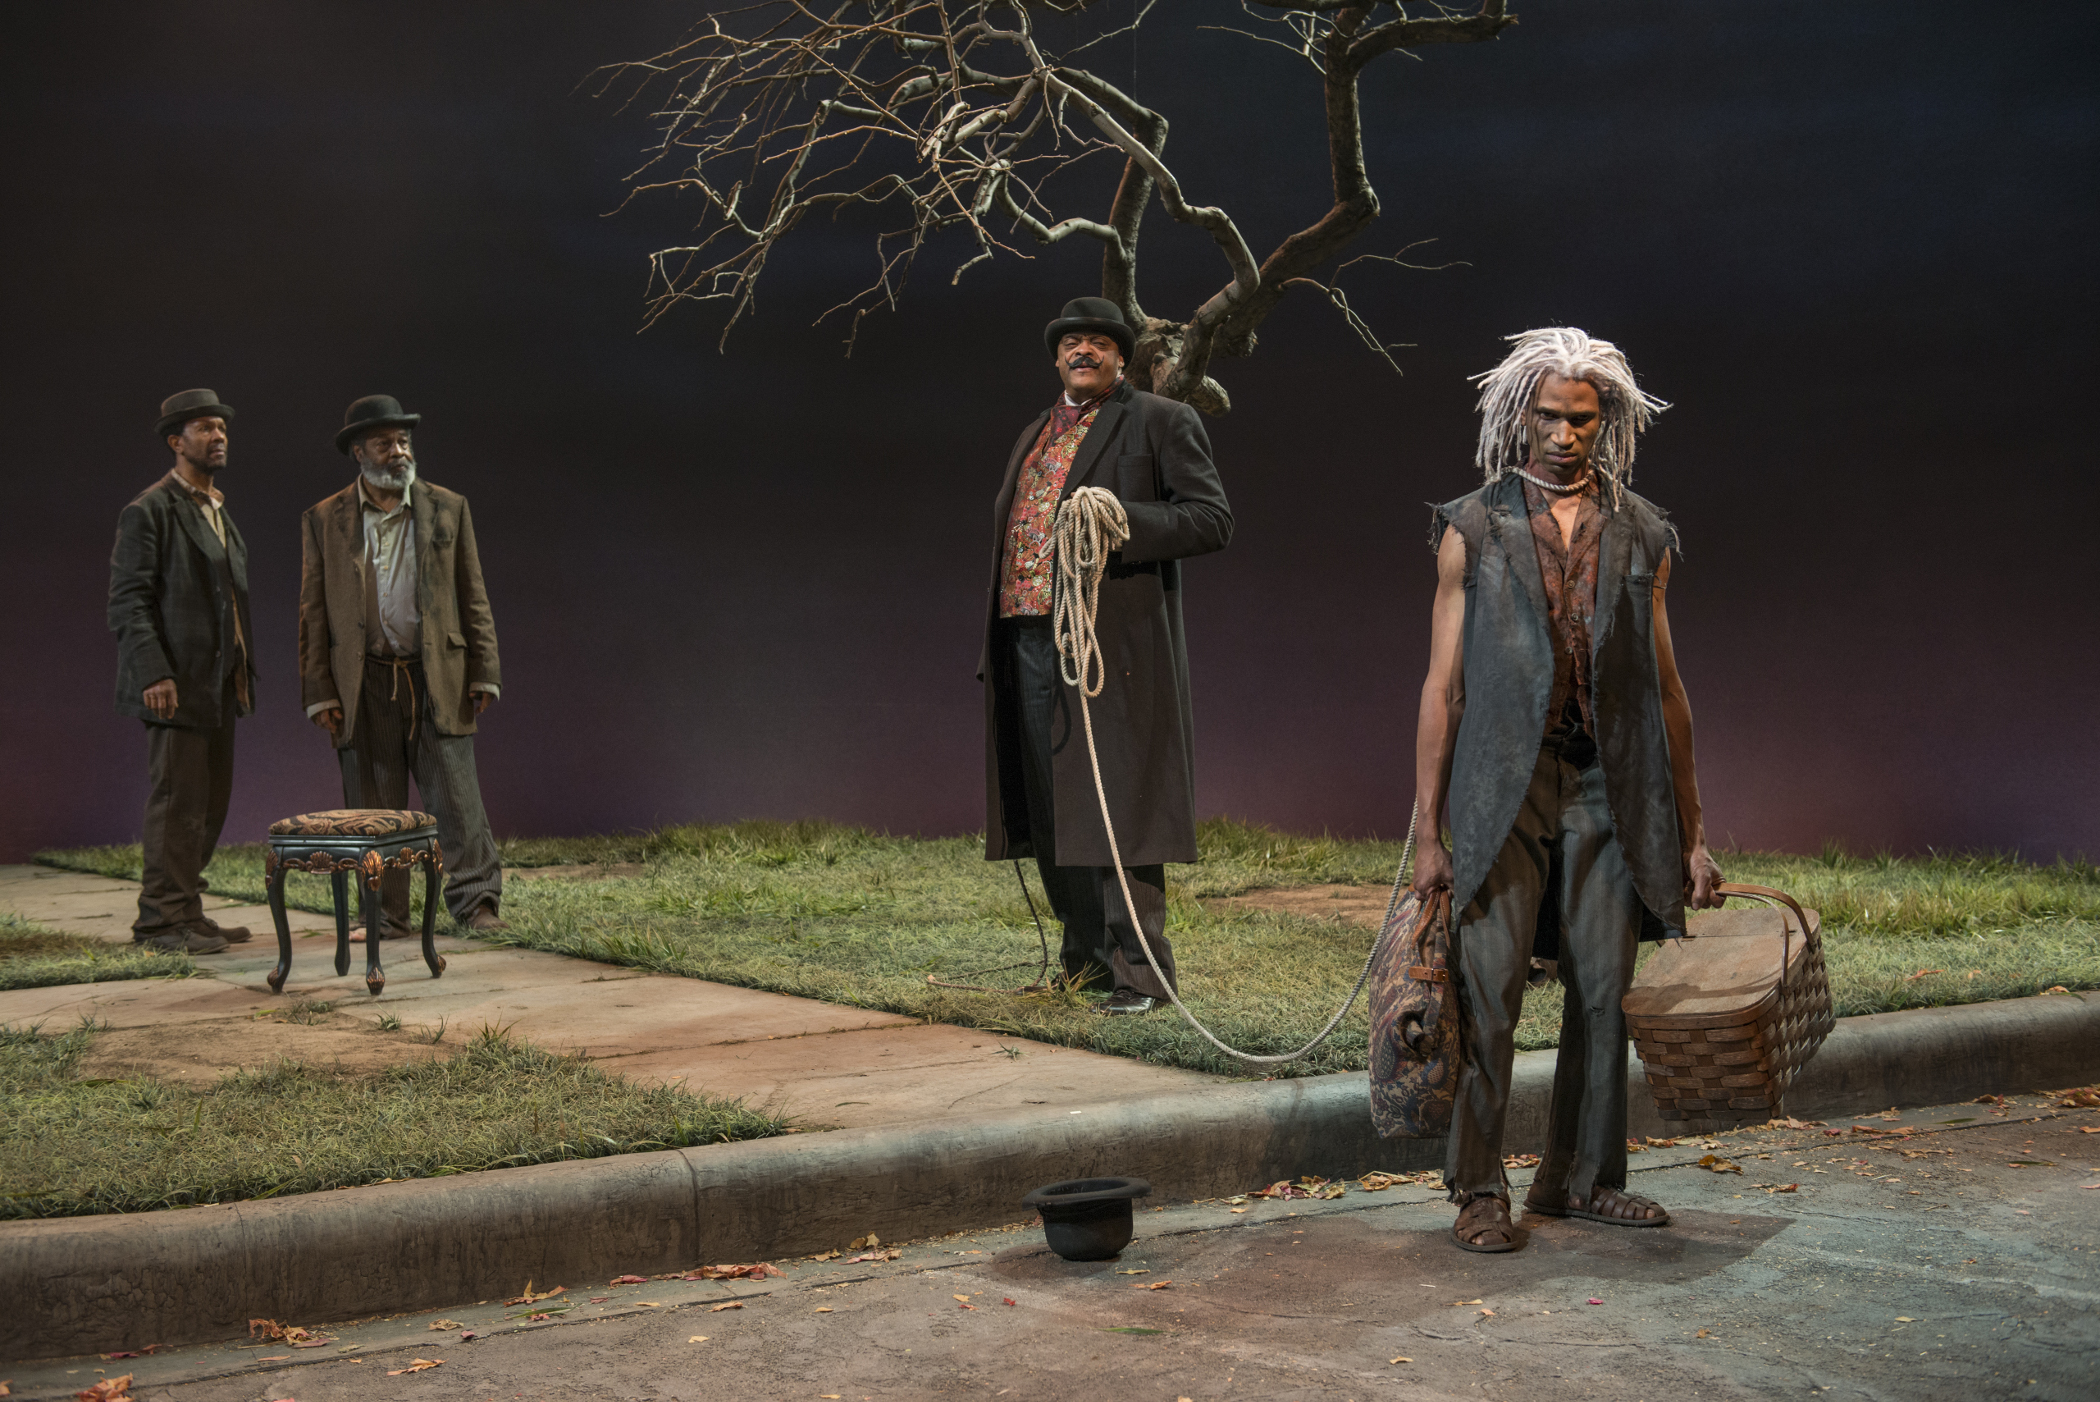 essay on waiting for godot waiting for godot a tragicomedy in two  theater review waiting for godot court theatre in chicago allengilmore alfredwilson a c smith anthonyleeirons